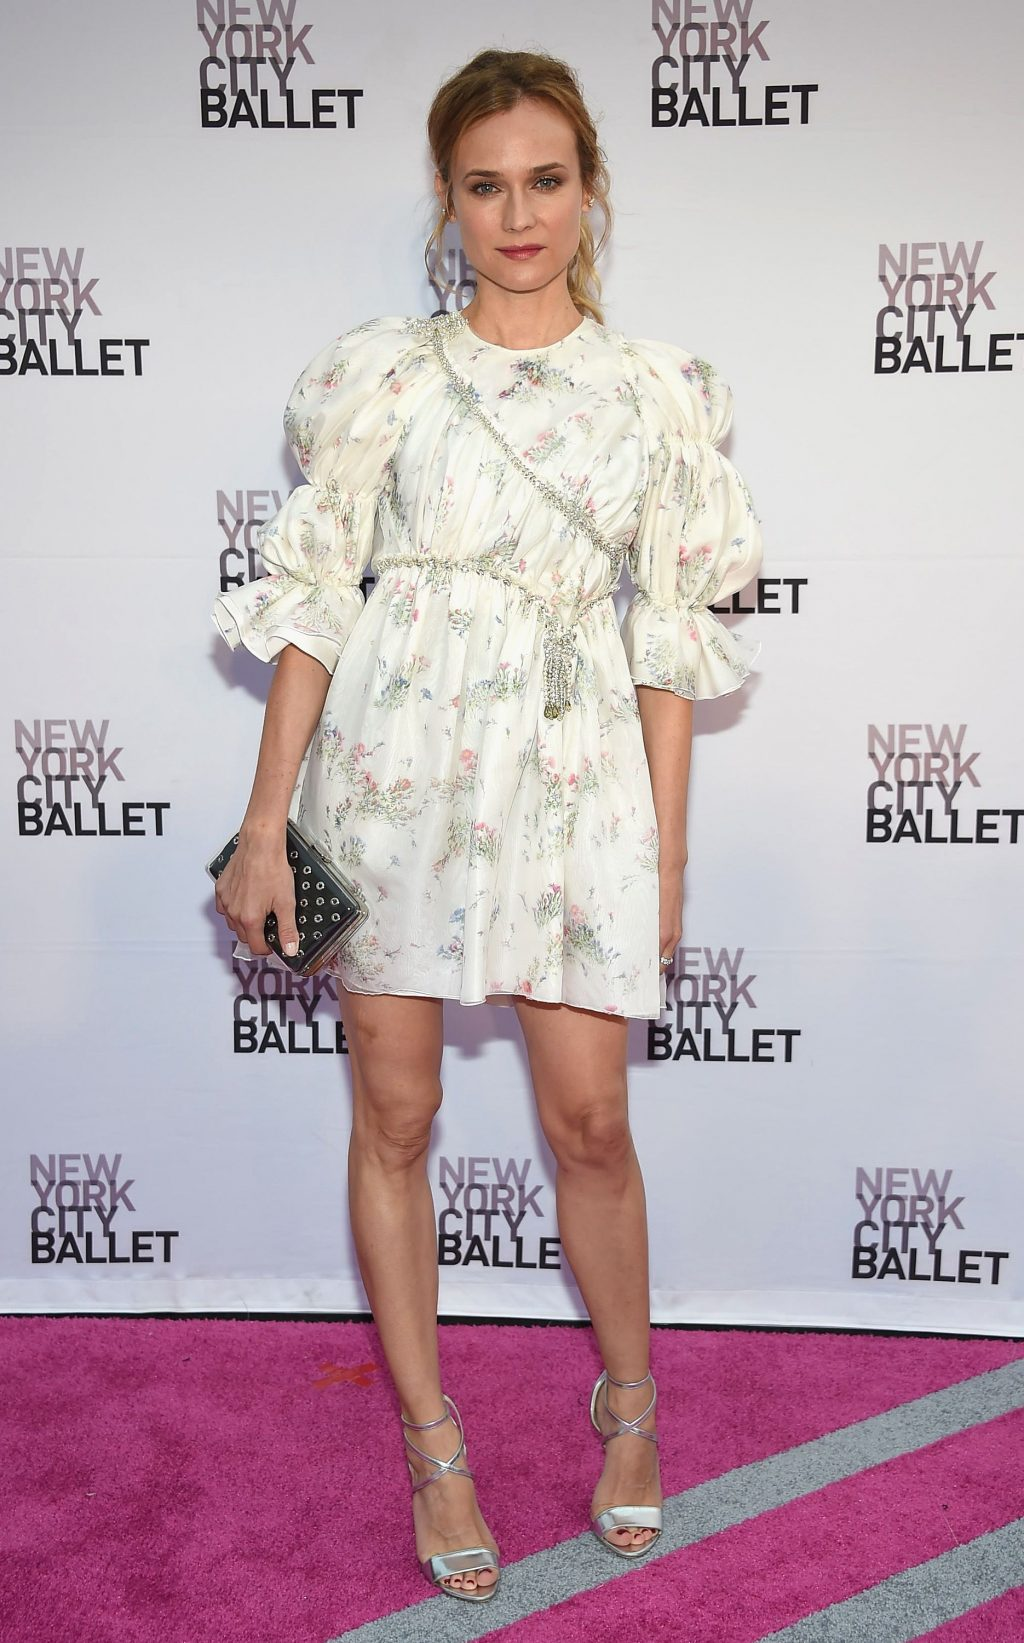 Best Dressed Celebrities September 2016 New York City Ballet 2016 Fall Gala Diane Kruger